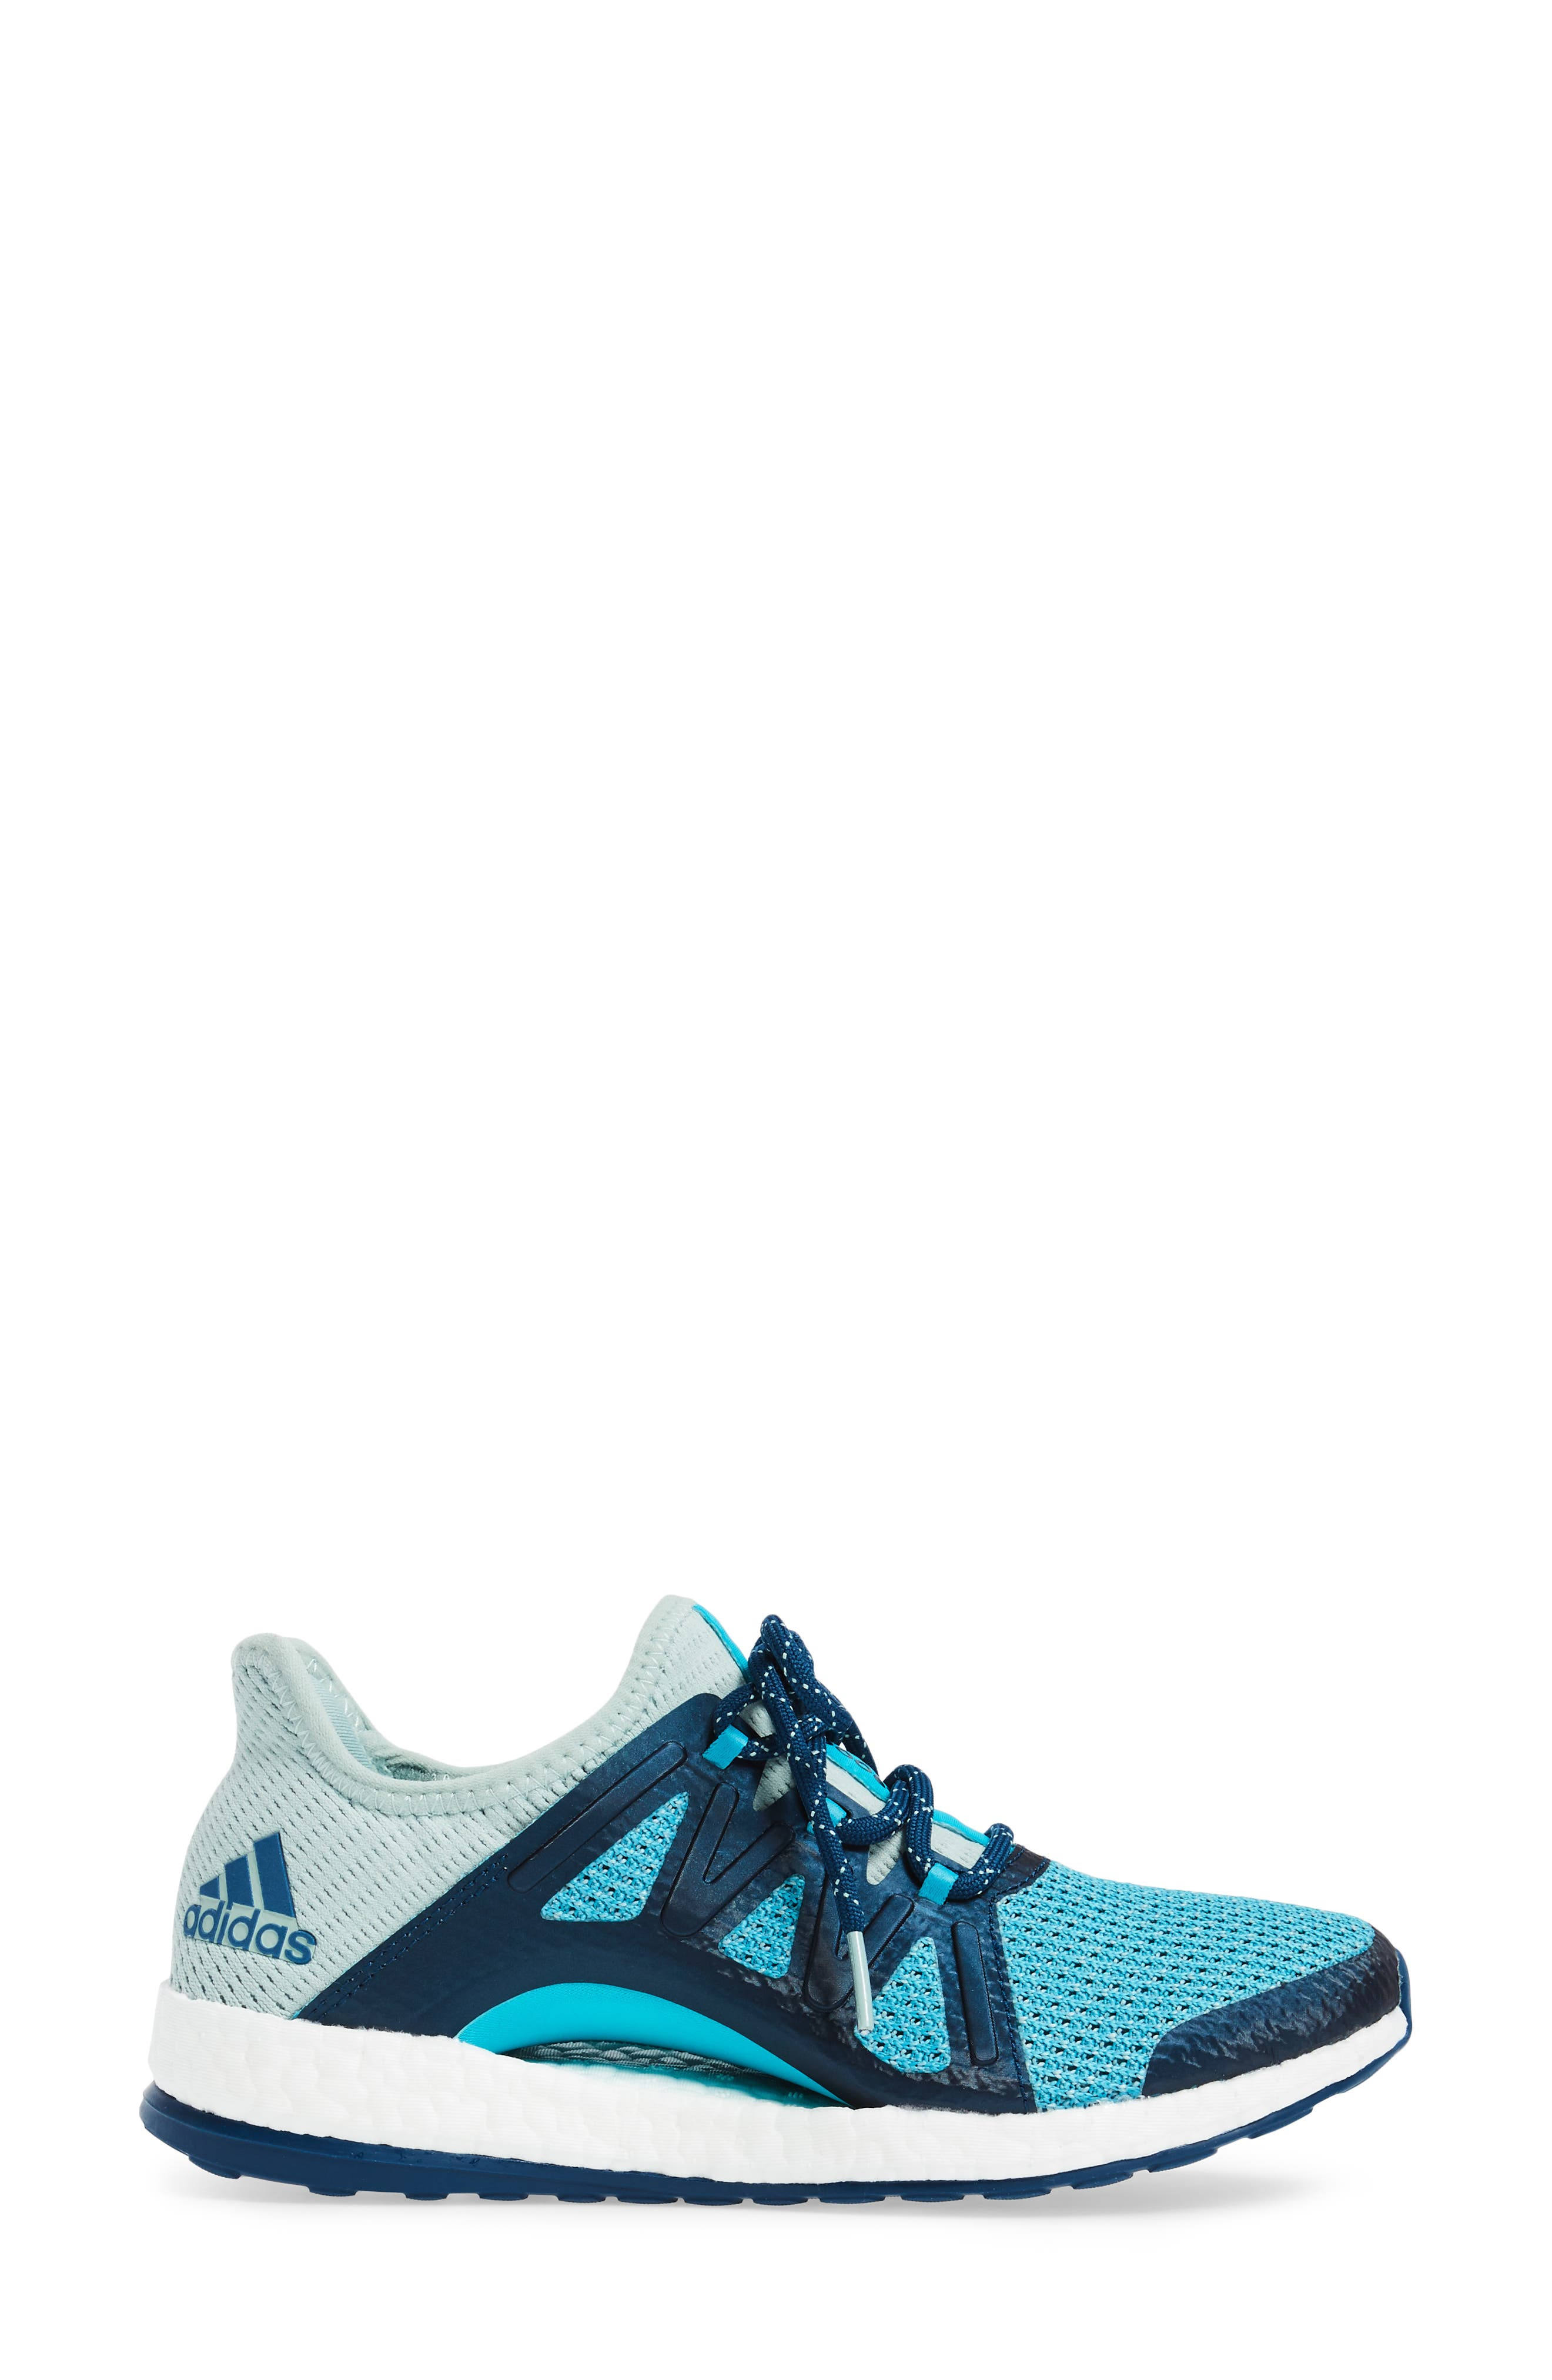 PureBOOST Xpose Running Shoe,                             Alternate thumbnail 5, color,                             Tactile Green/ Energy Blue